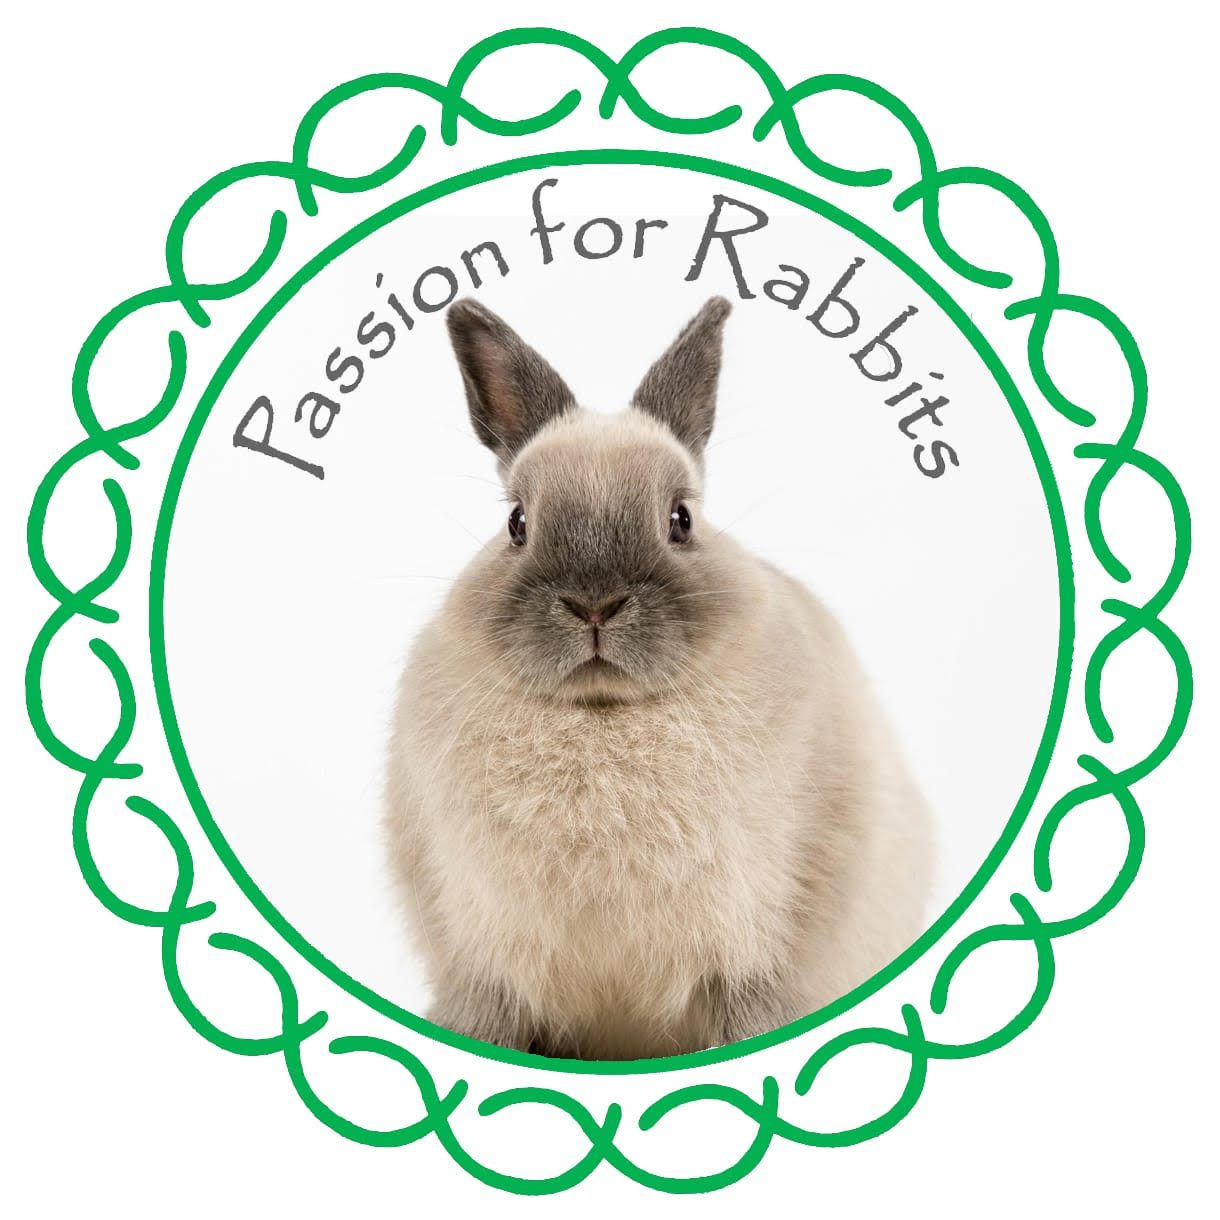 Passion for Rabbits